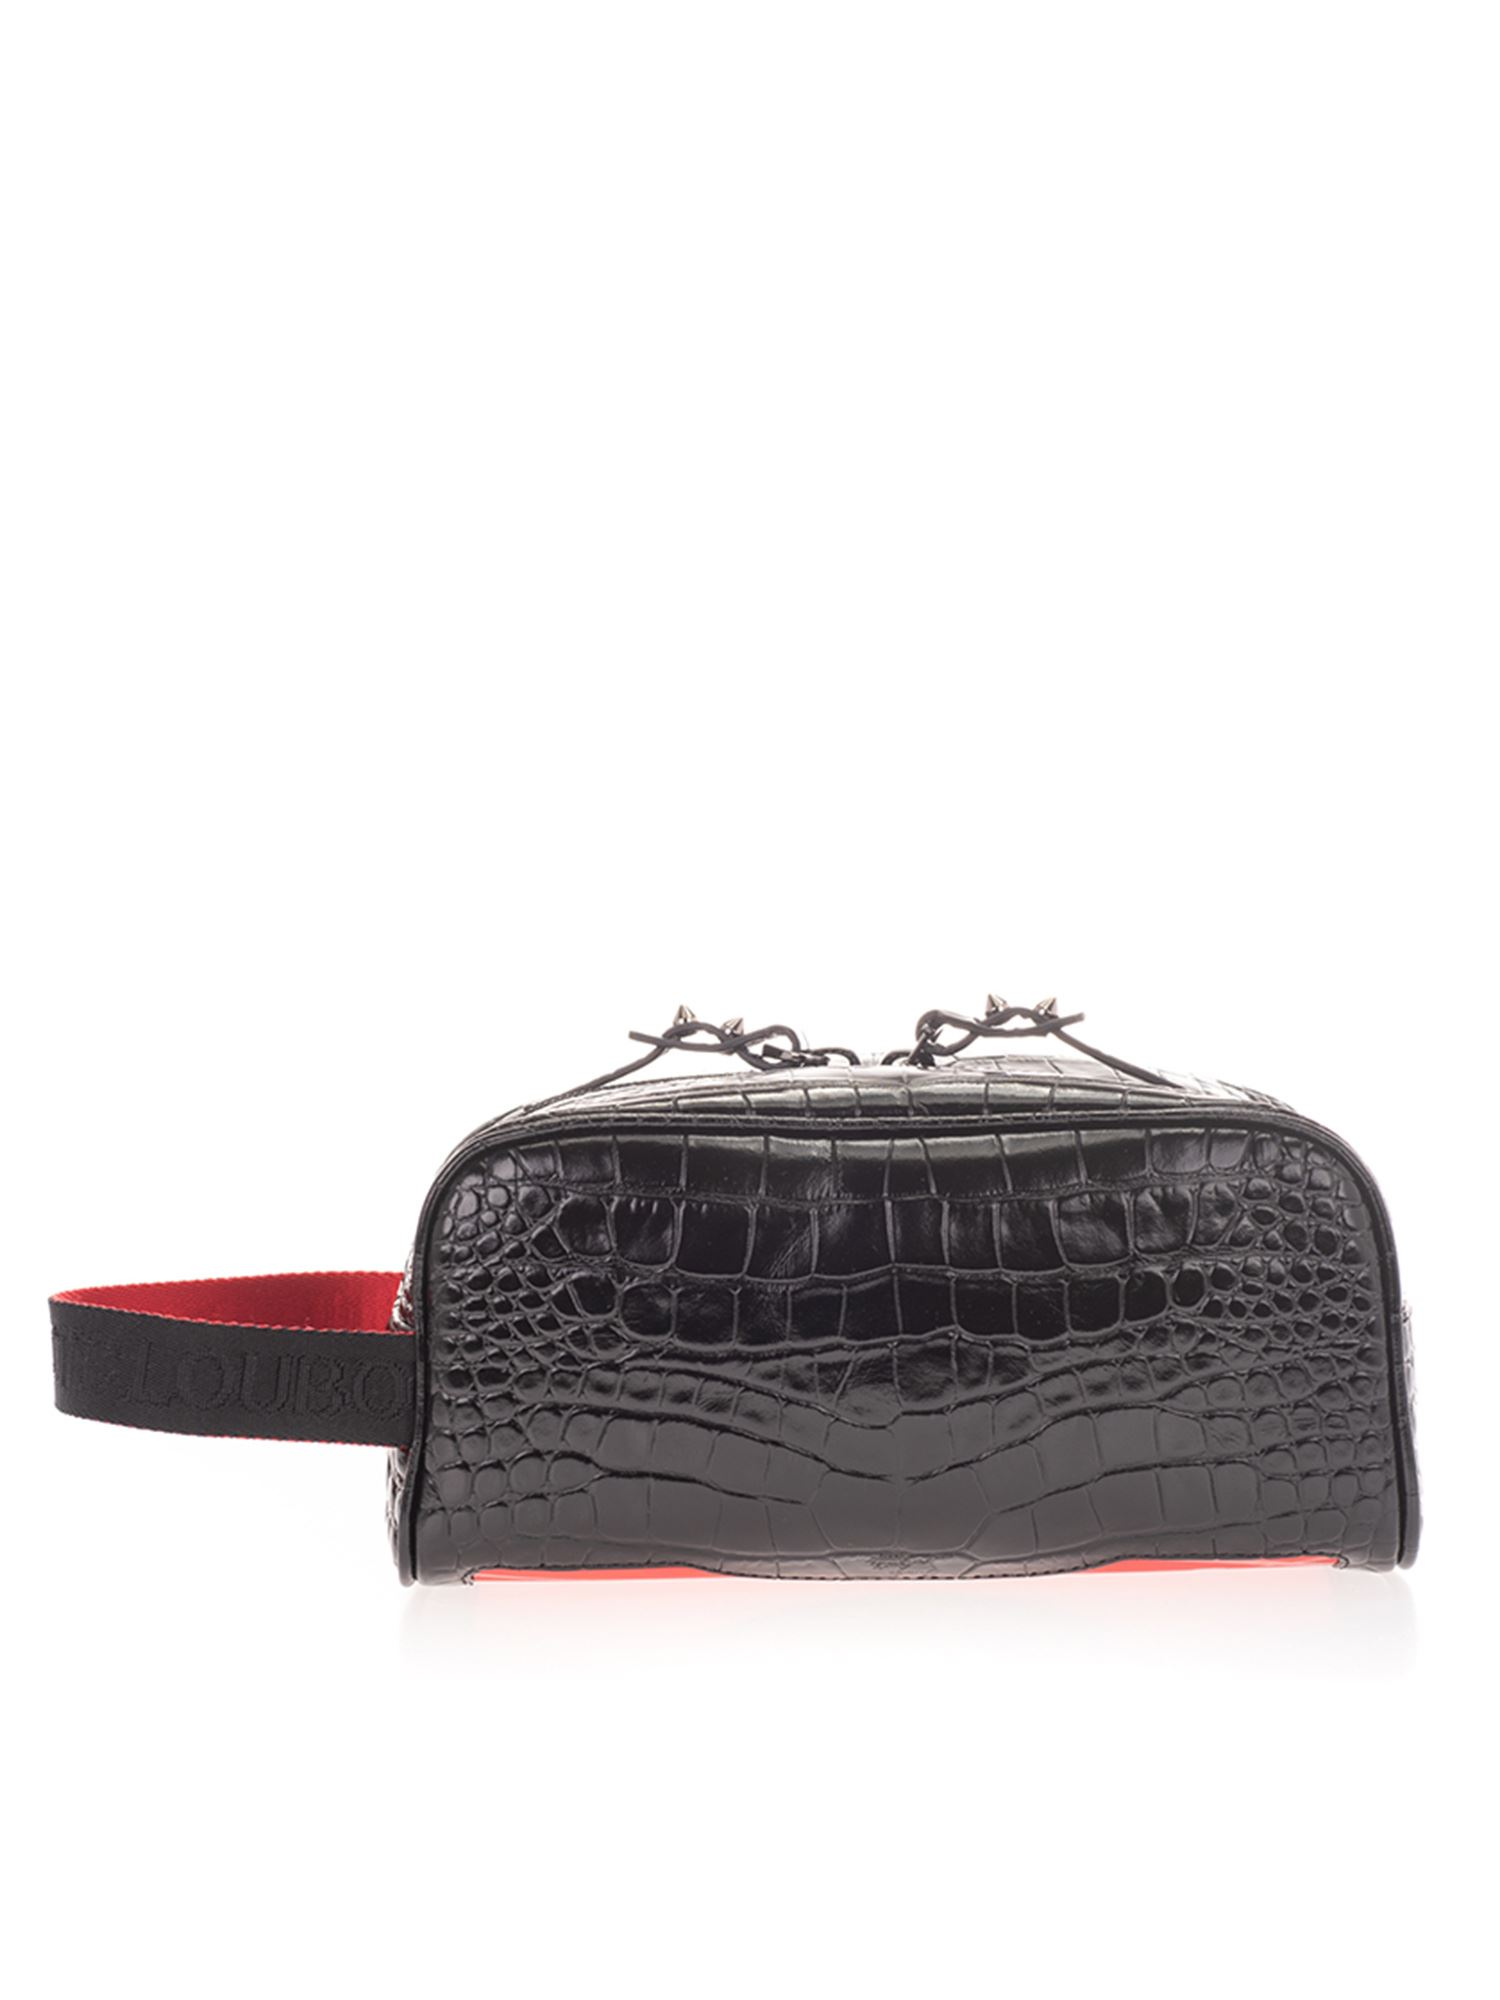 Christian Louboutin BLASTER MINI BEAUTY CASE IN BLACK